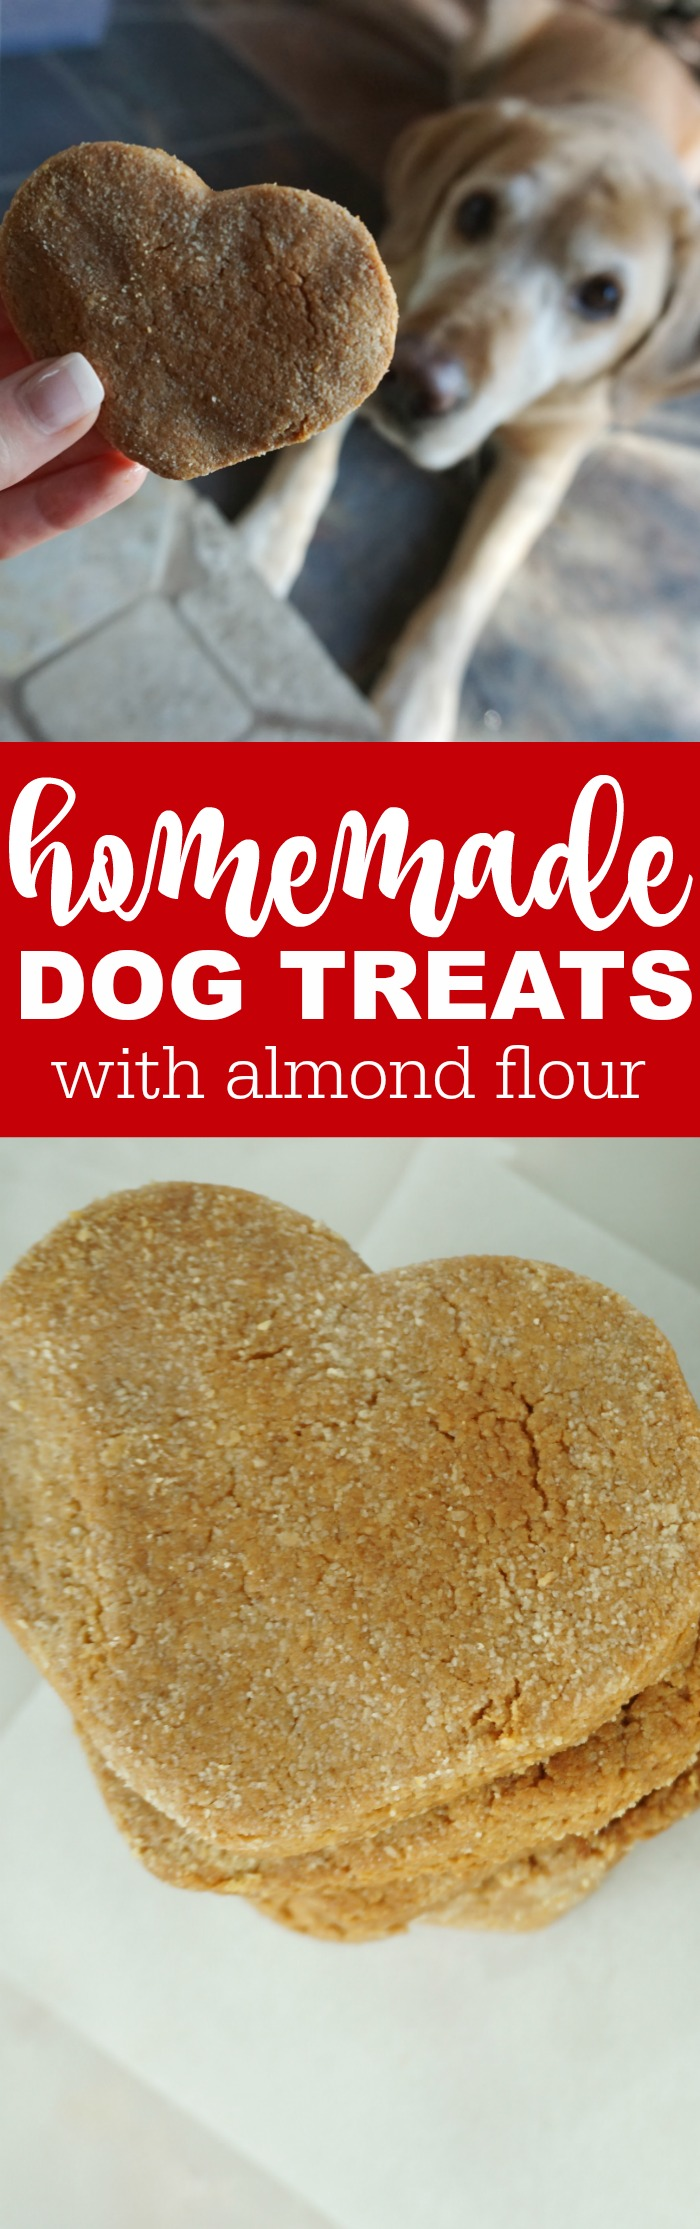 Homemade Dog Treats with Almond Flour! Healthy treats for your pups that they will love! DIY And Easy to make at home with only 5 Simple Ingredients!